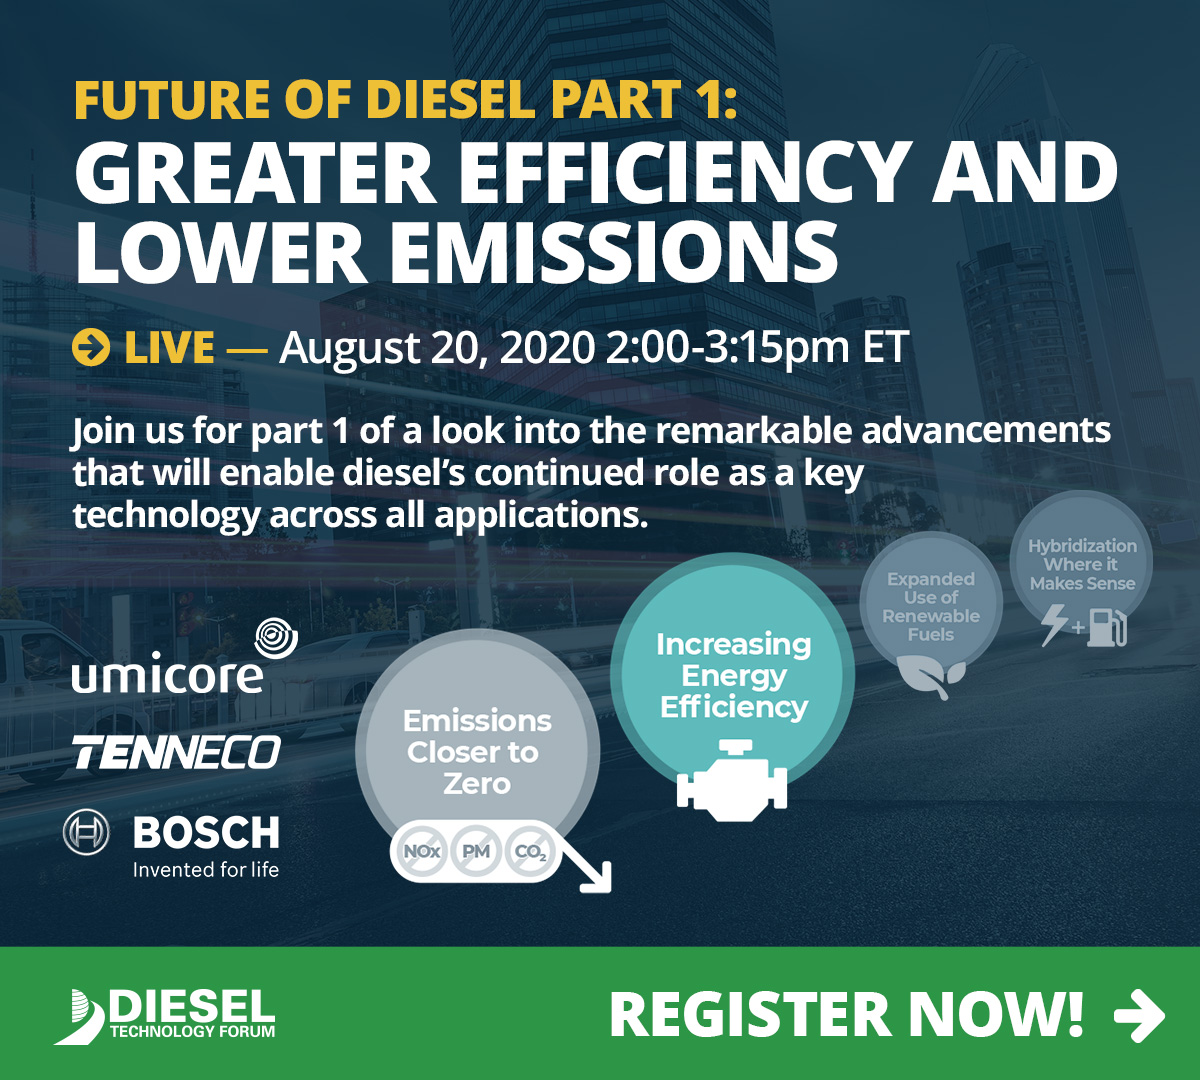 FUTURE OF DIESEL PART 1: GREATER EFFICIENCY AND LOWER EMISSIONS